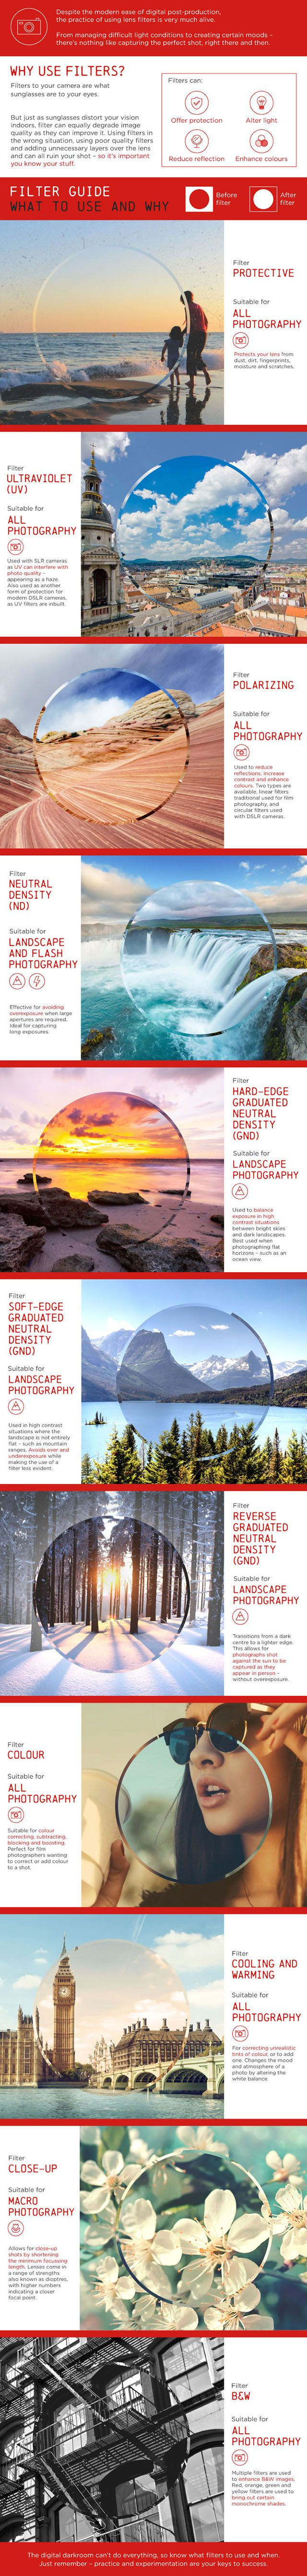 A Simple Visual #Guide to Photographic Lens Filters [#infographic] — #Photography via @petapixel